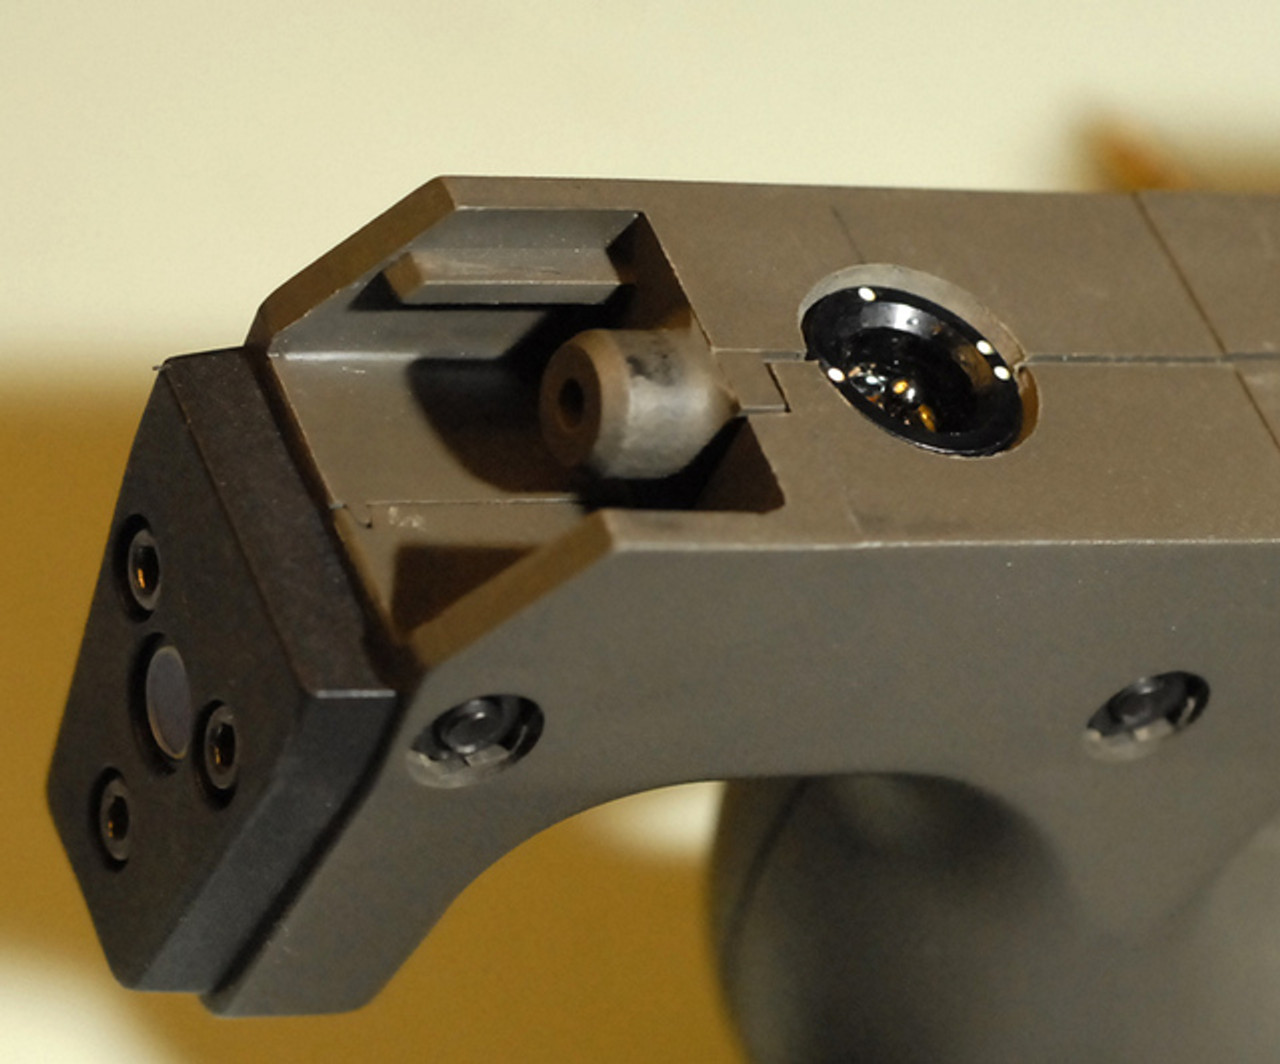 PS90 P90 internal laser details showing switch and housing.